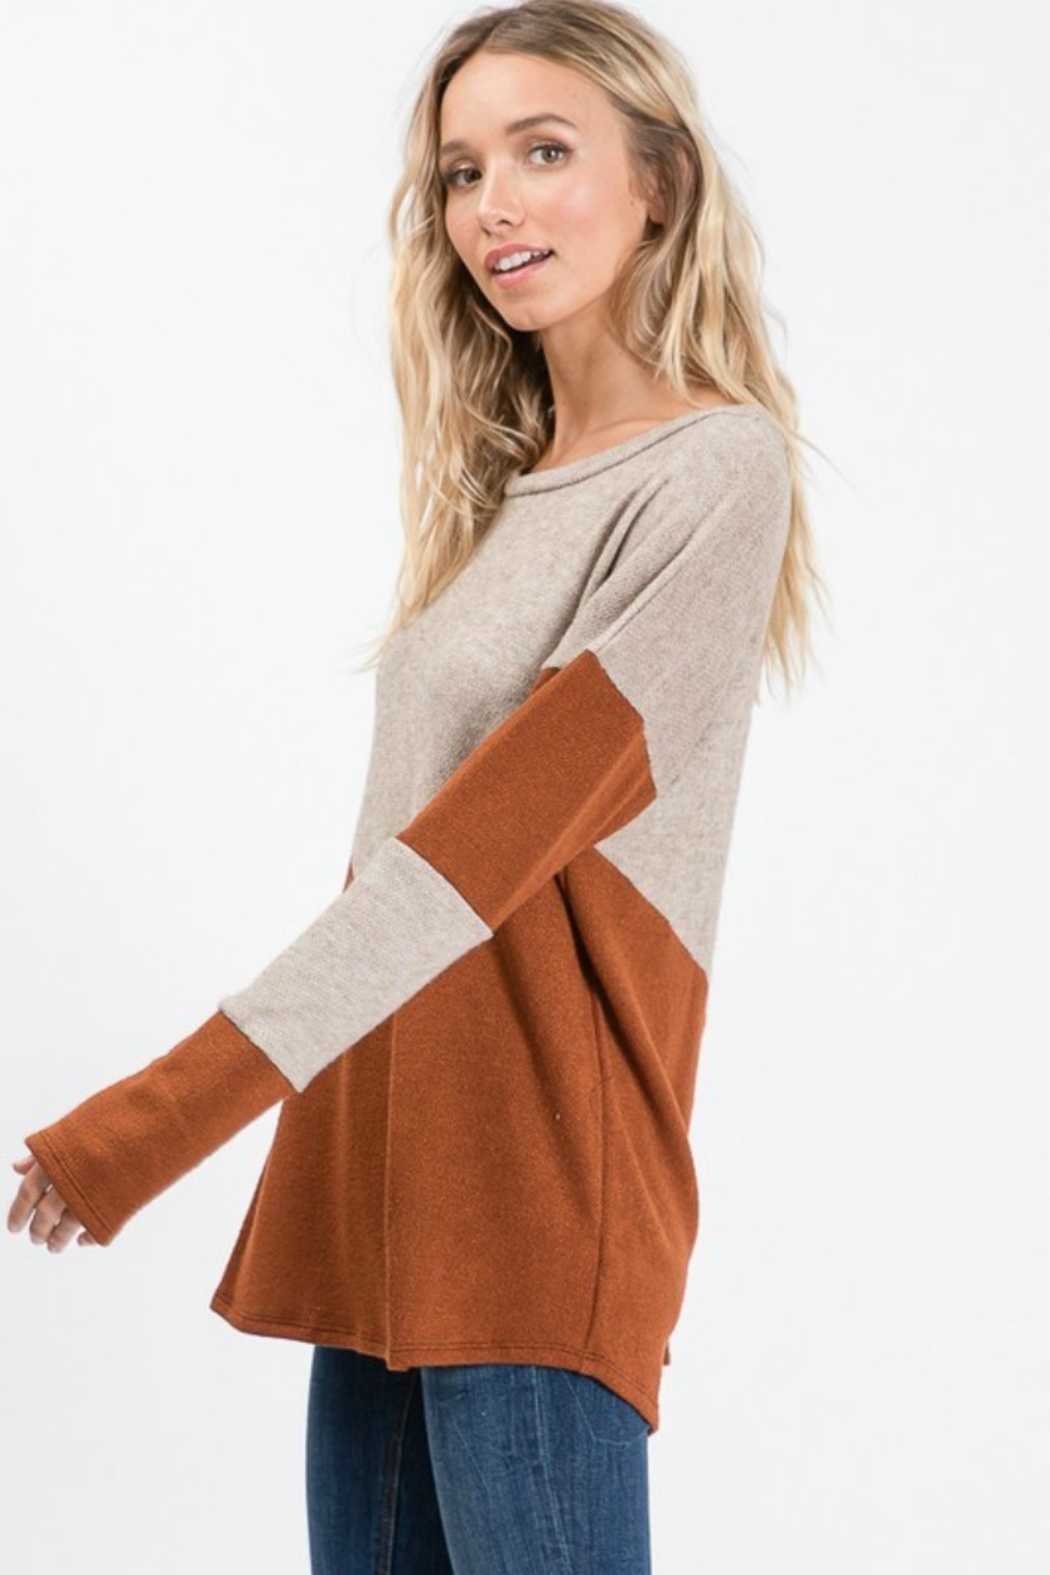 Cezanne 2TONE COLOR BLOCK SWEATER - Front Full Image